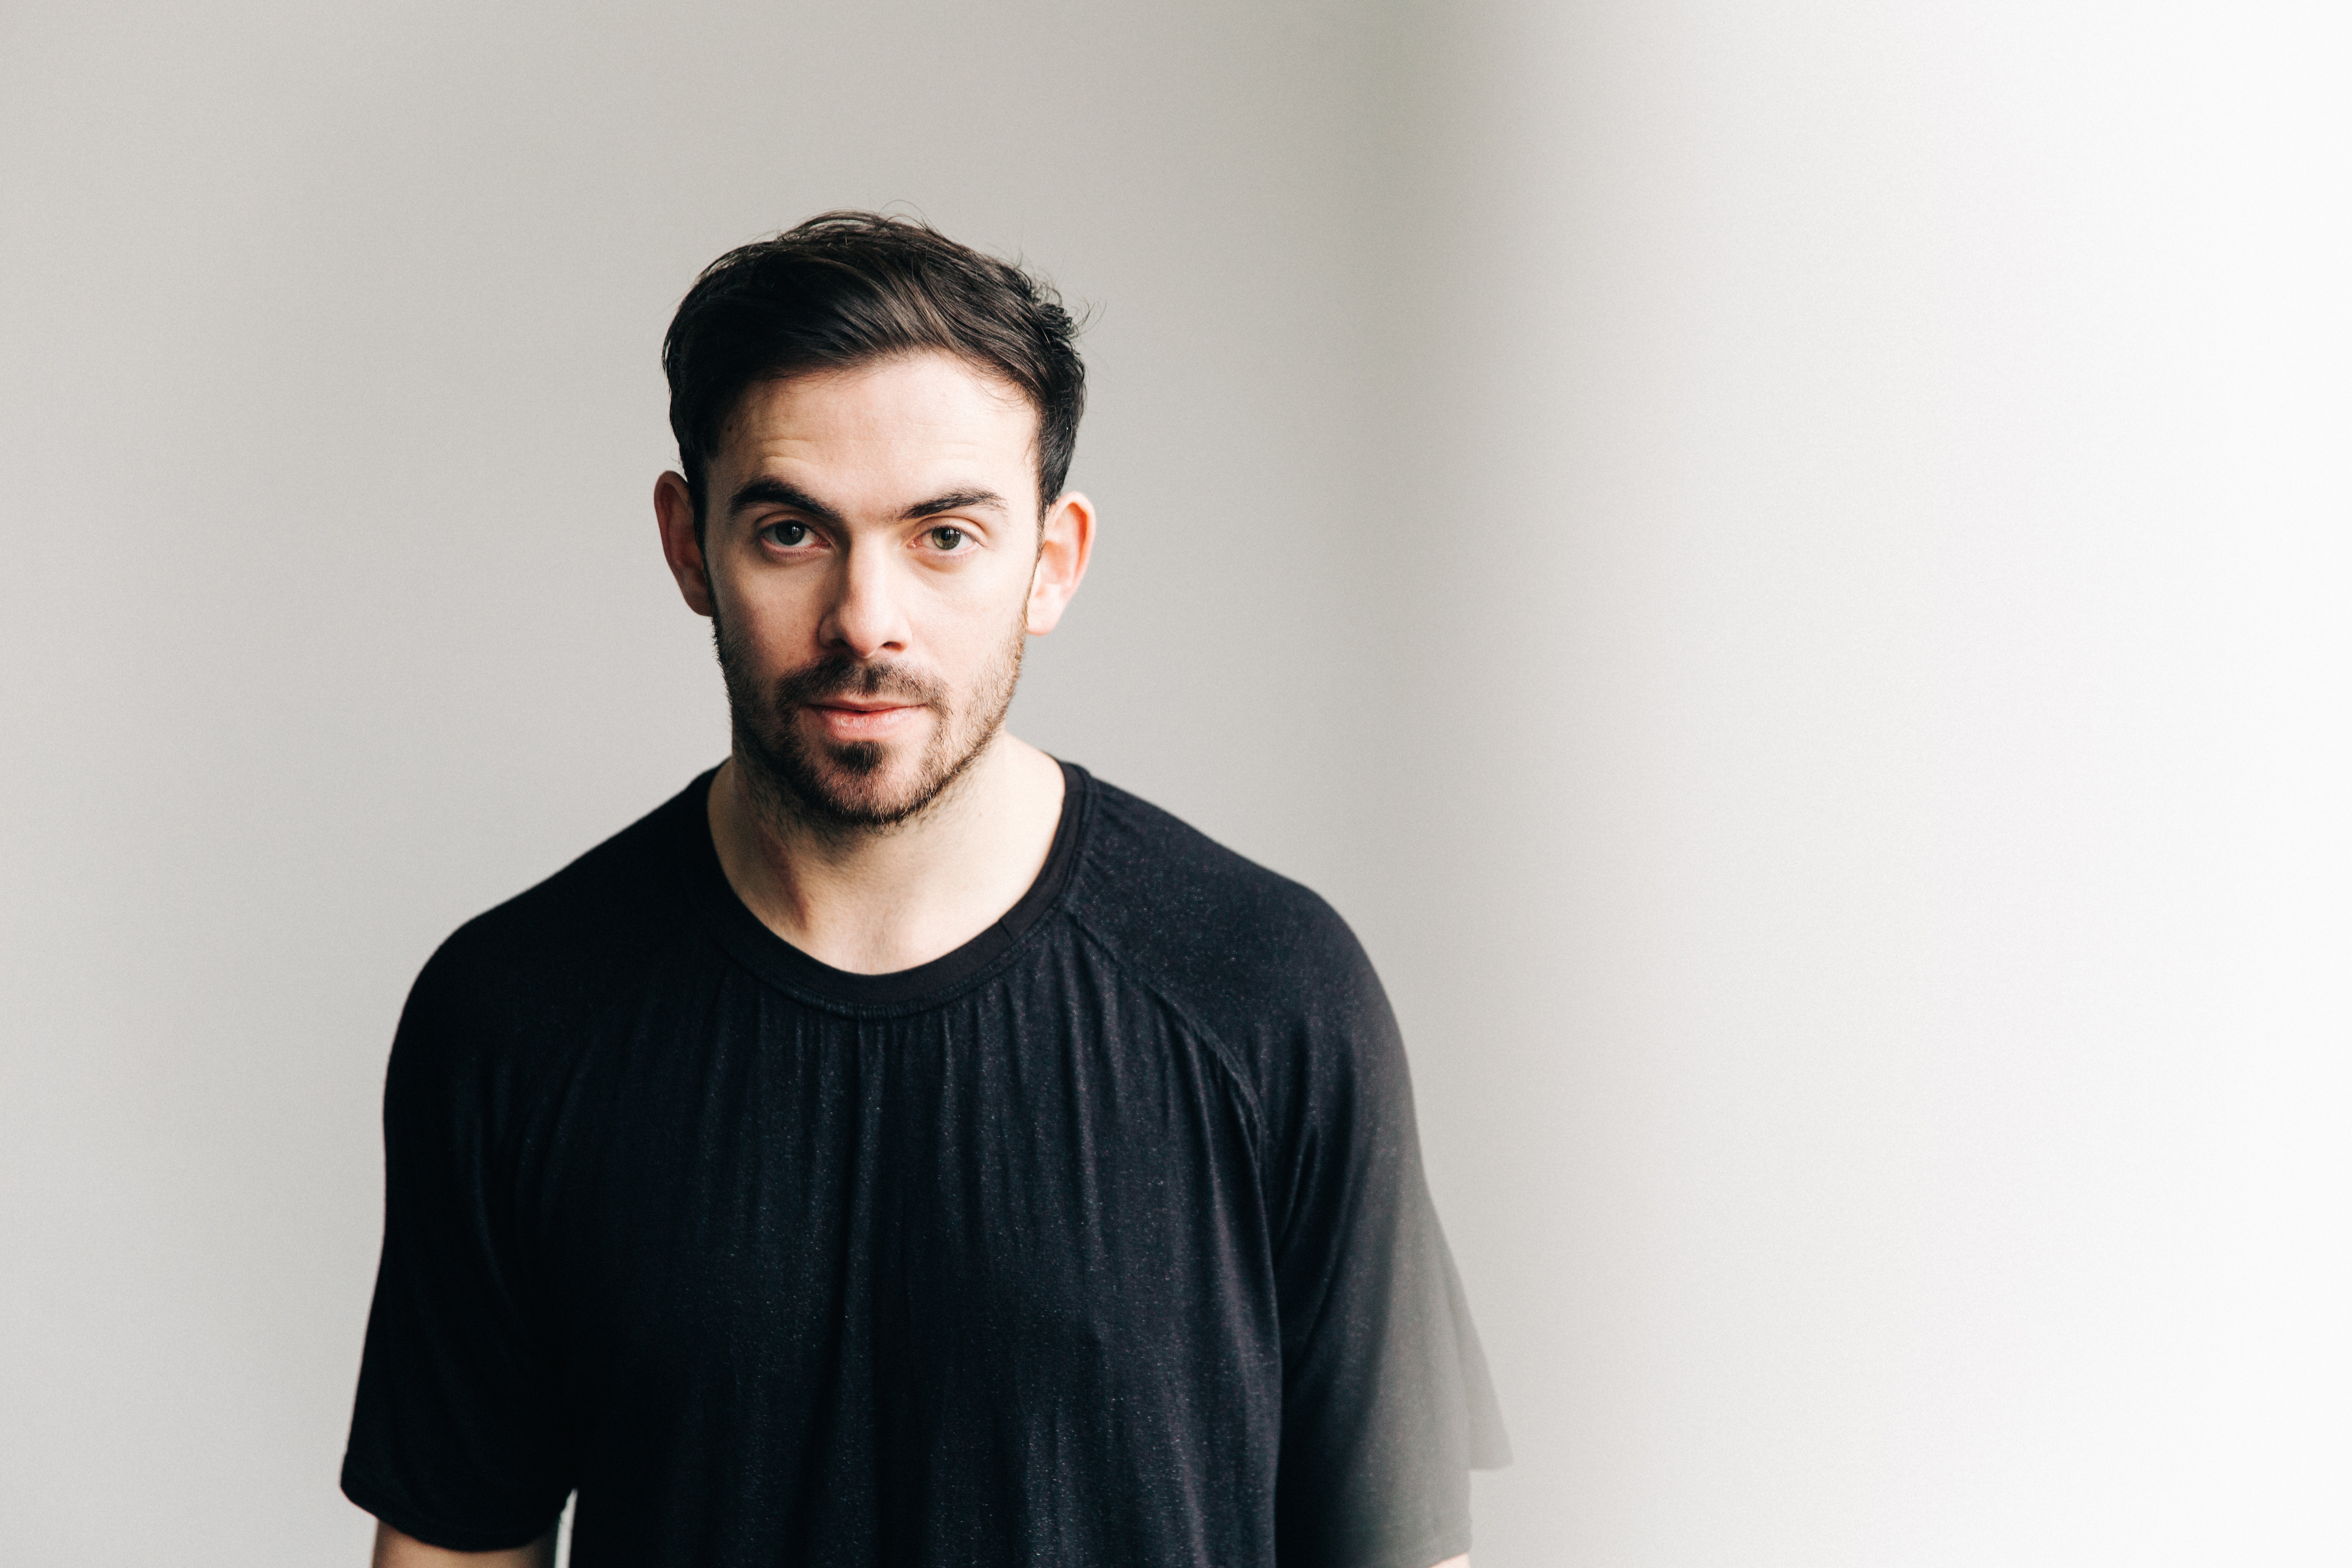 patrick_topping